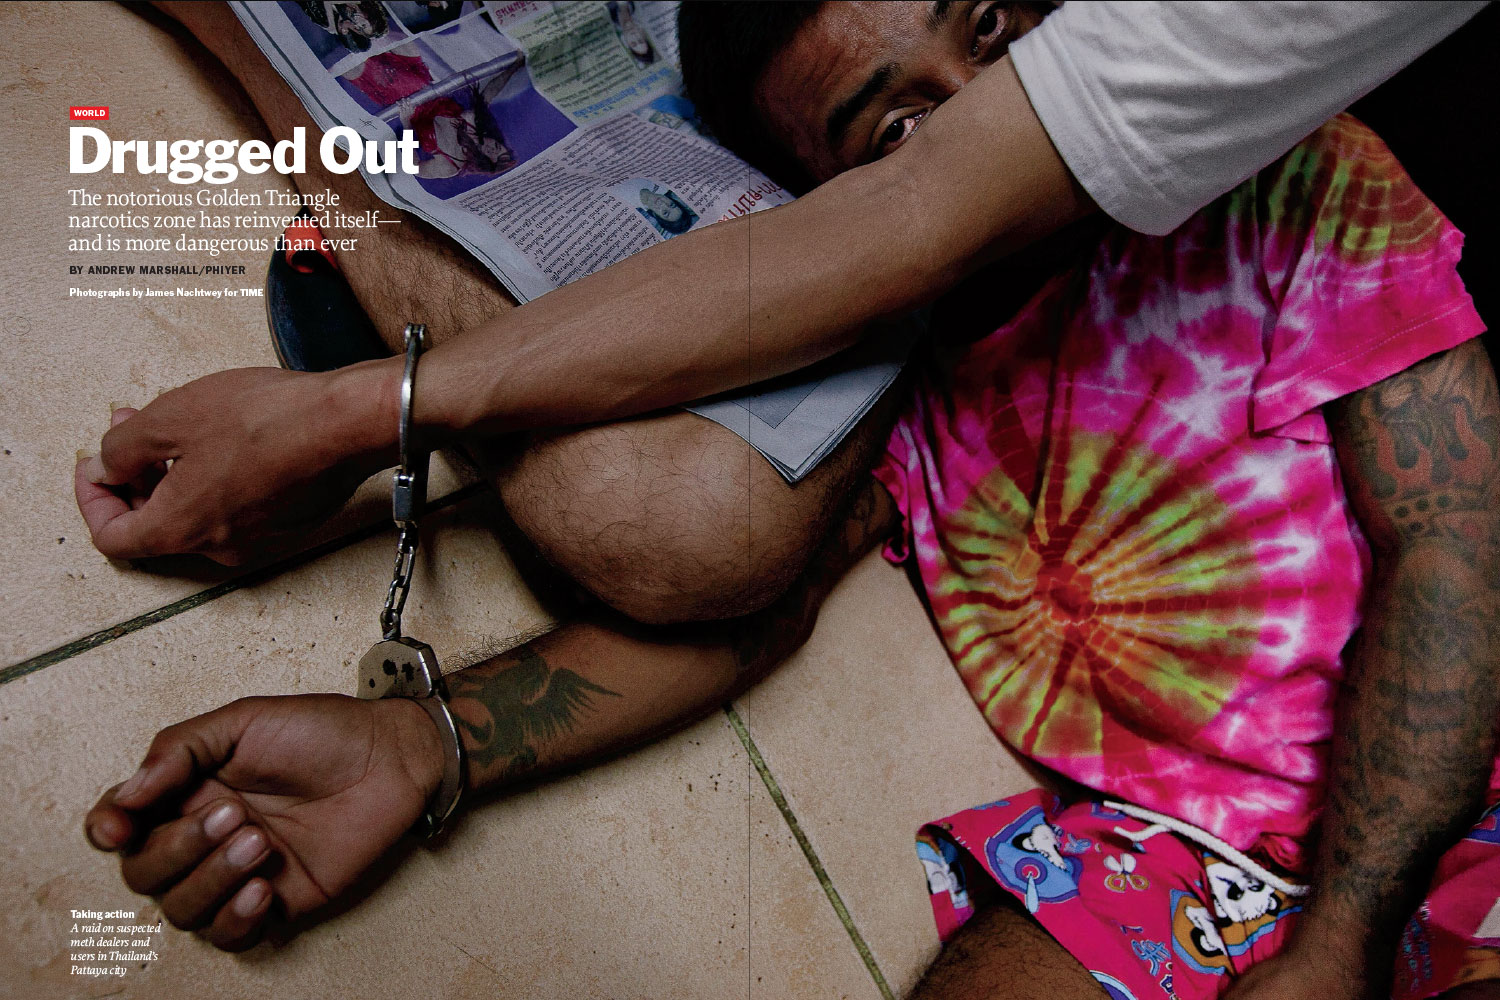 From  Drugged Out.  May 30, 2011 International issue.